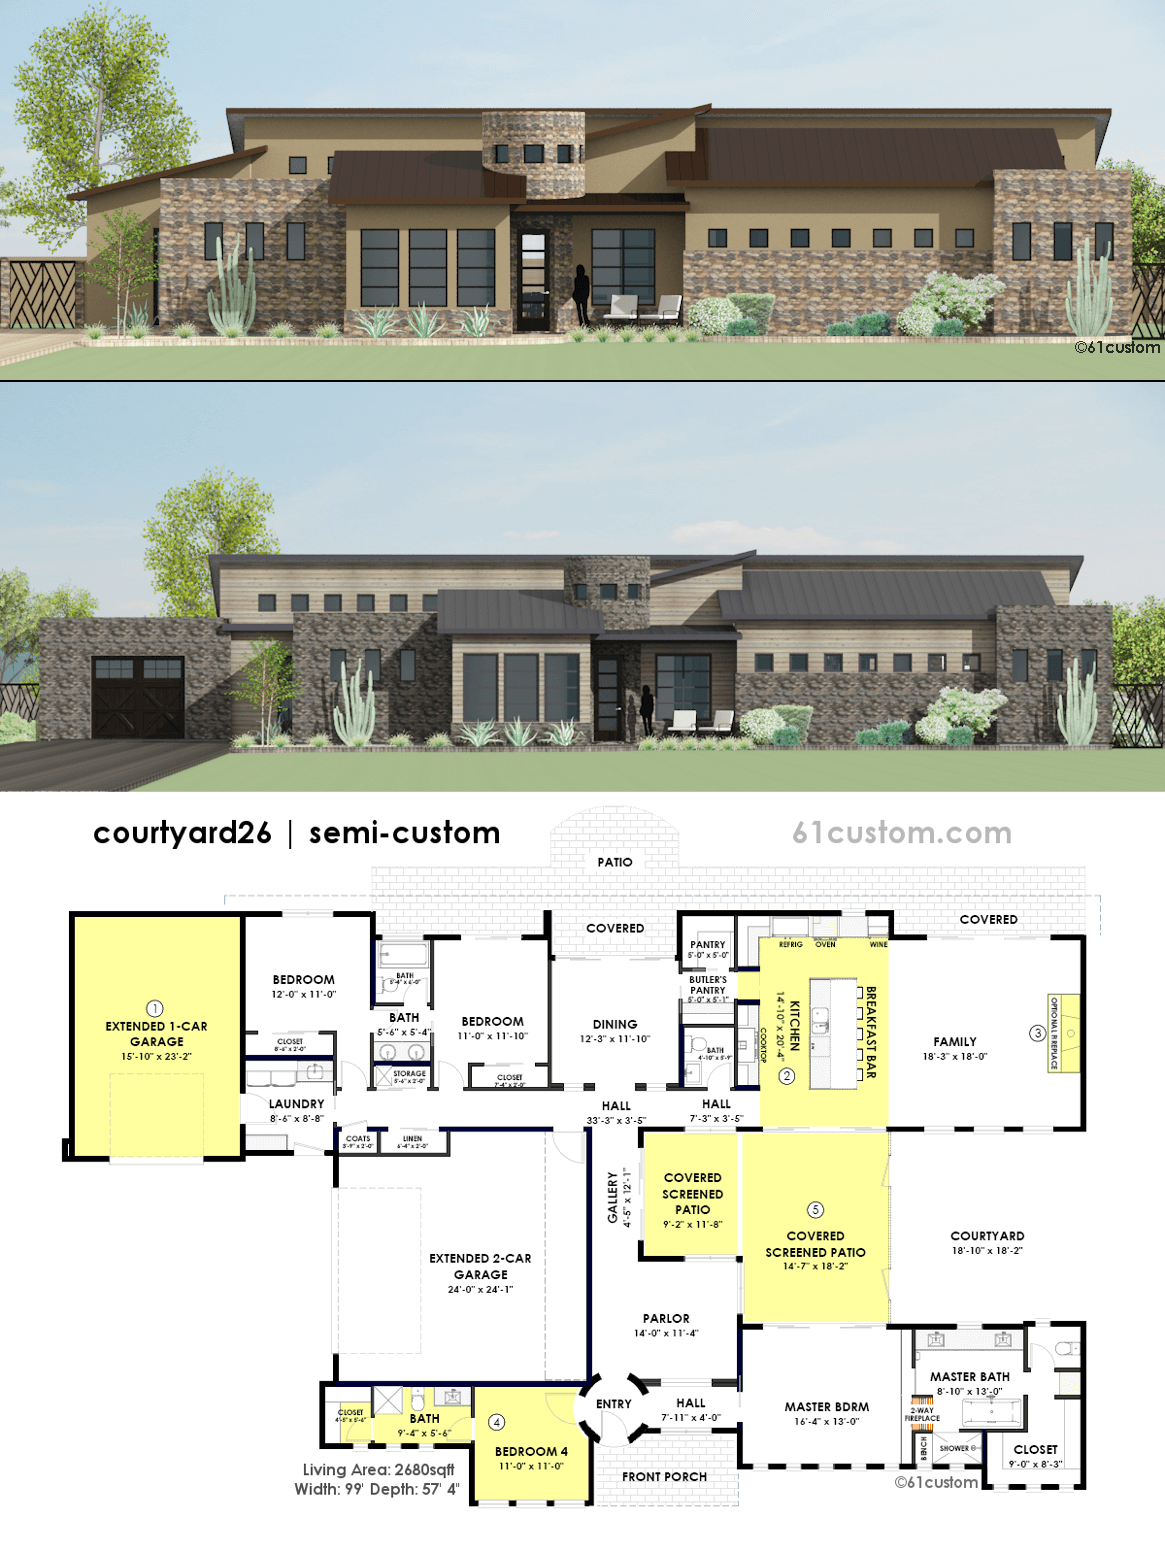 Contemporary side courtyard house plan 61custom for Custom modern home plans